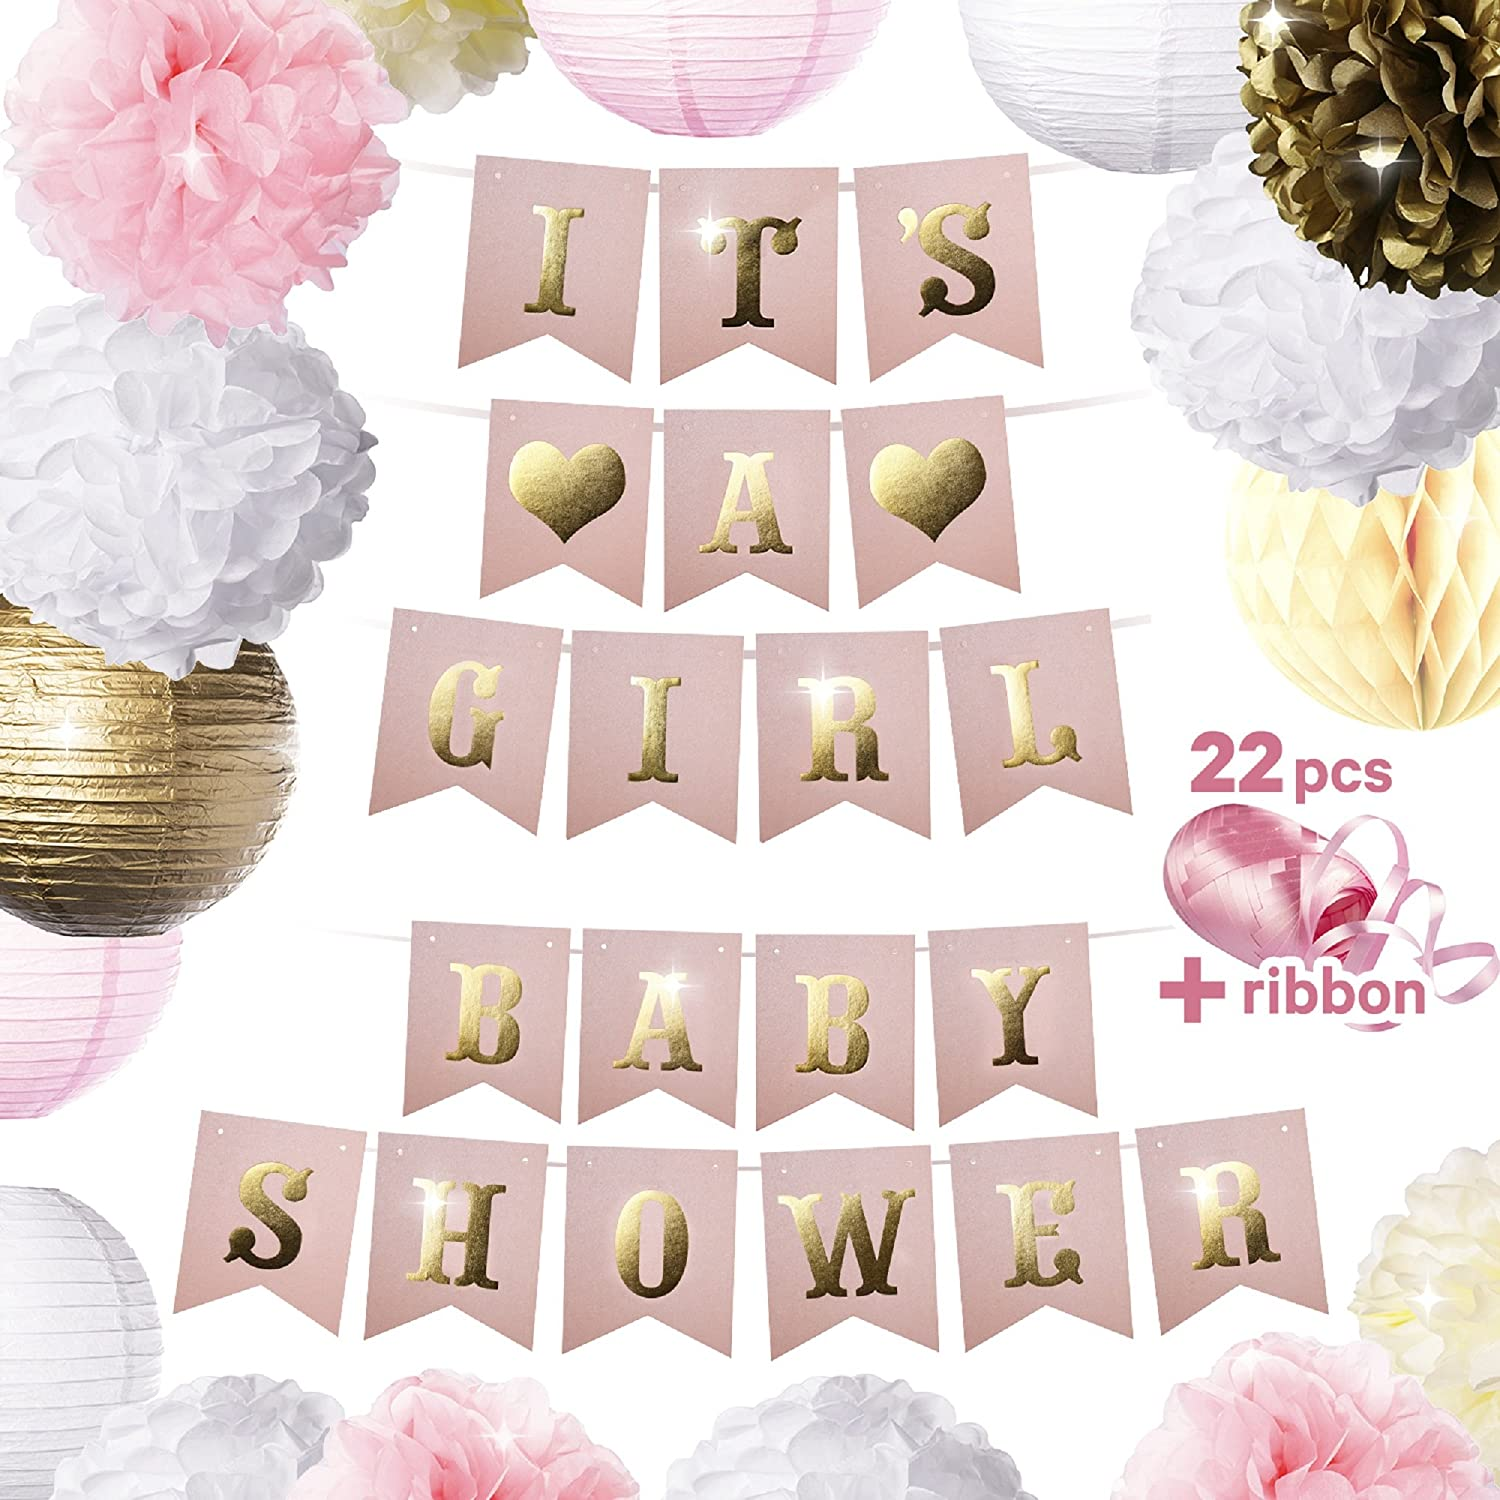 . 22 PCs Baby Shower Decorations for Girl   ITS A Girl Baby Shower  Decorations Kit   Cute Pink   Gold